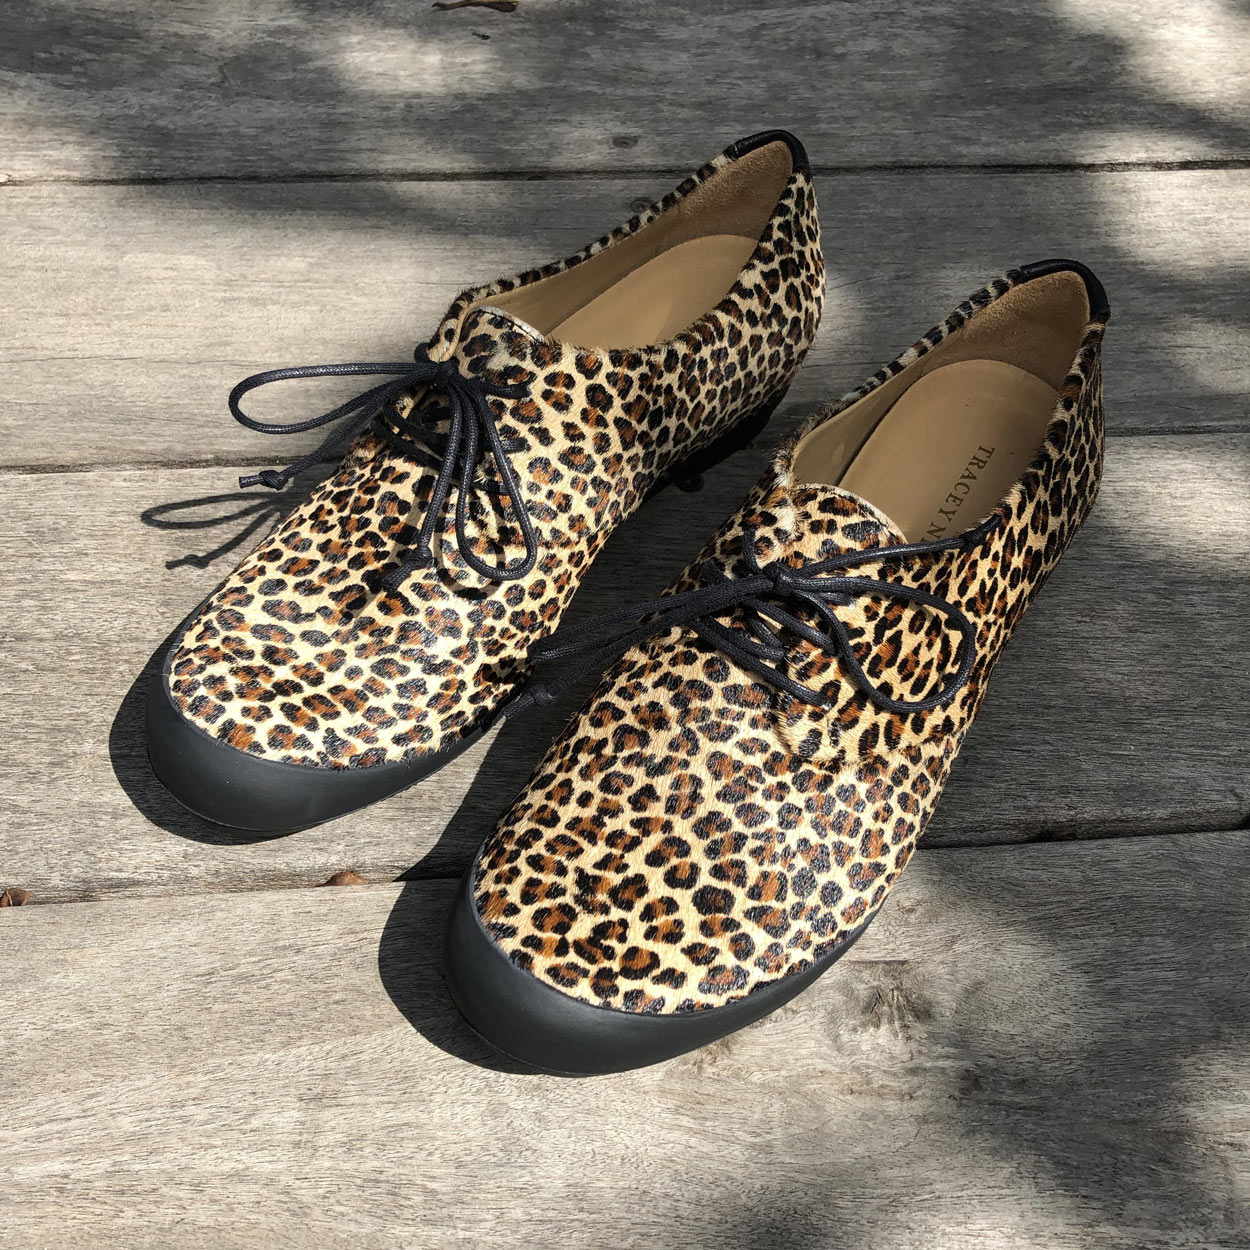 chaussure-faux-leopard-cuir-Tracey-Neuls-Carouge-Galerie-h-accessoire-collection-2019